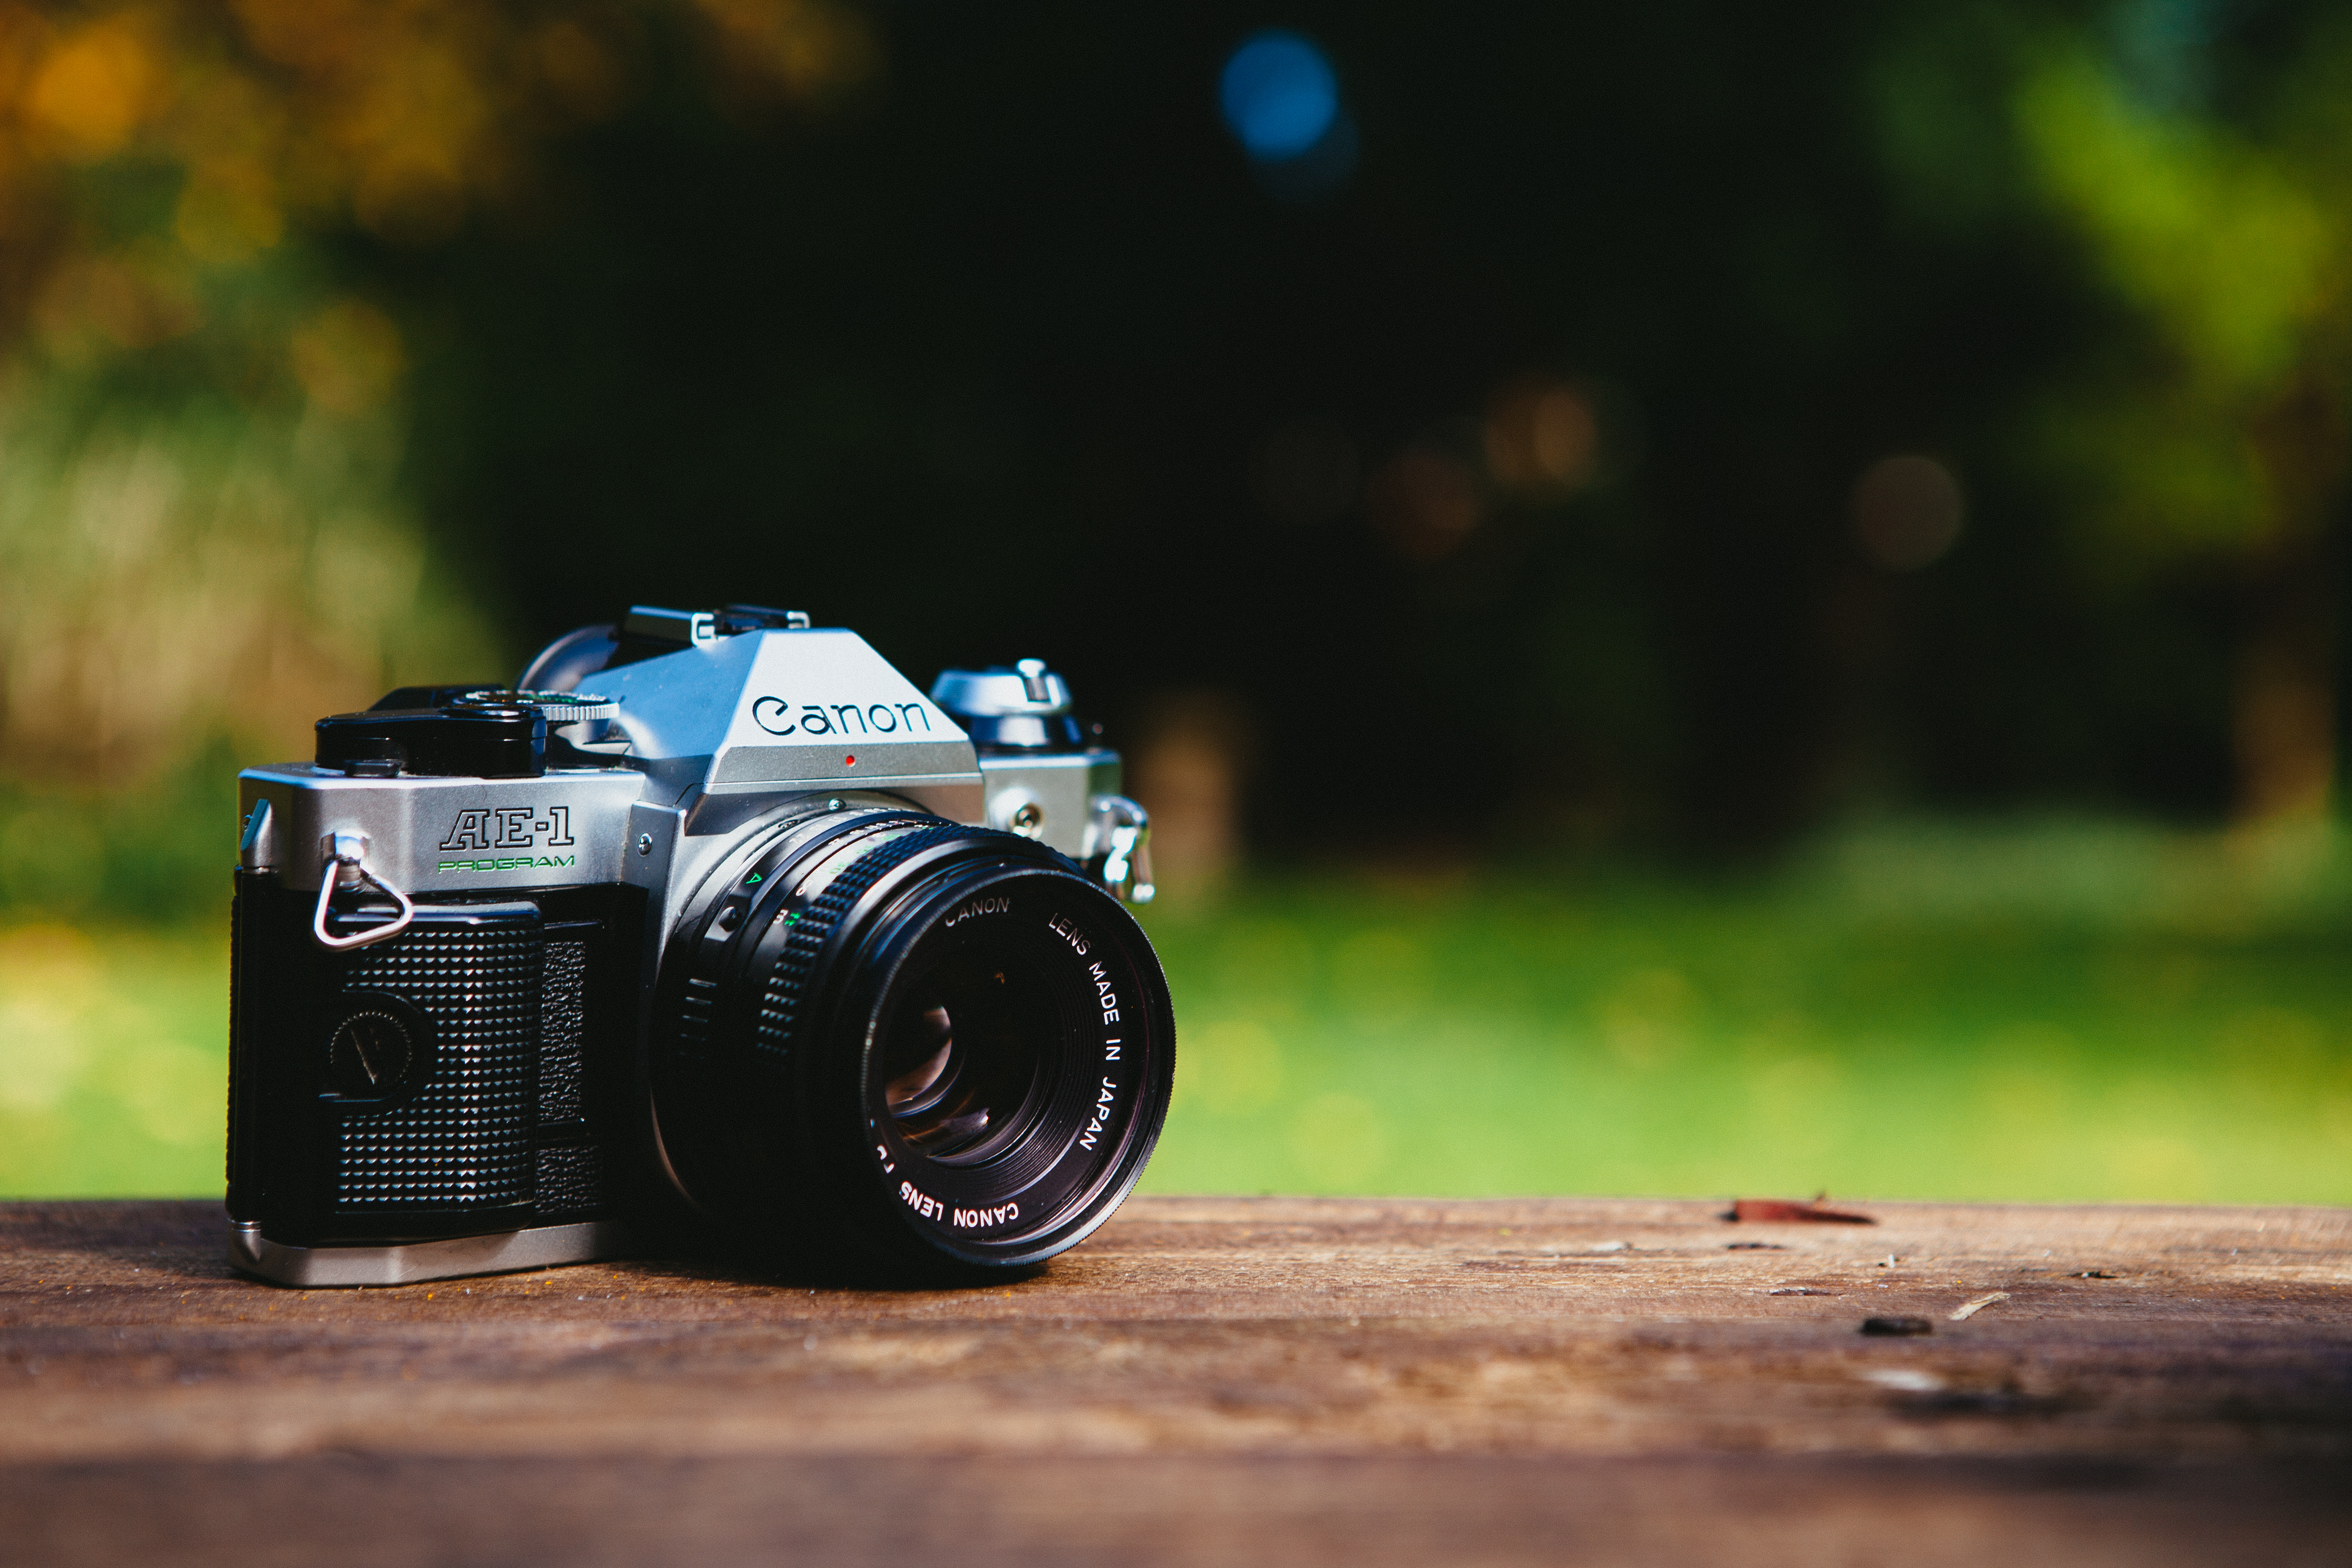 Access all Pexels photos directly on your desktop. Buy the App →: https://www.pexels.com/photo/nature-photography-analog-camera-canon...